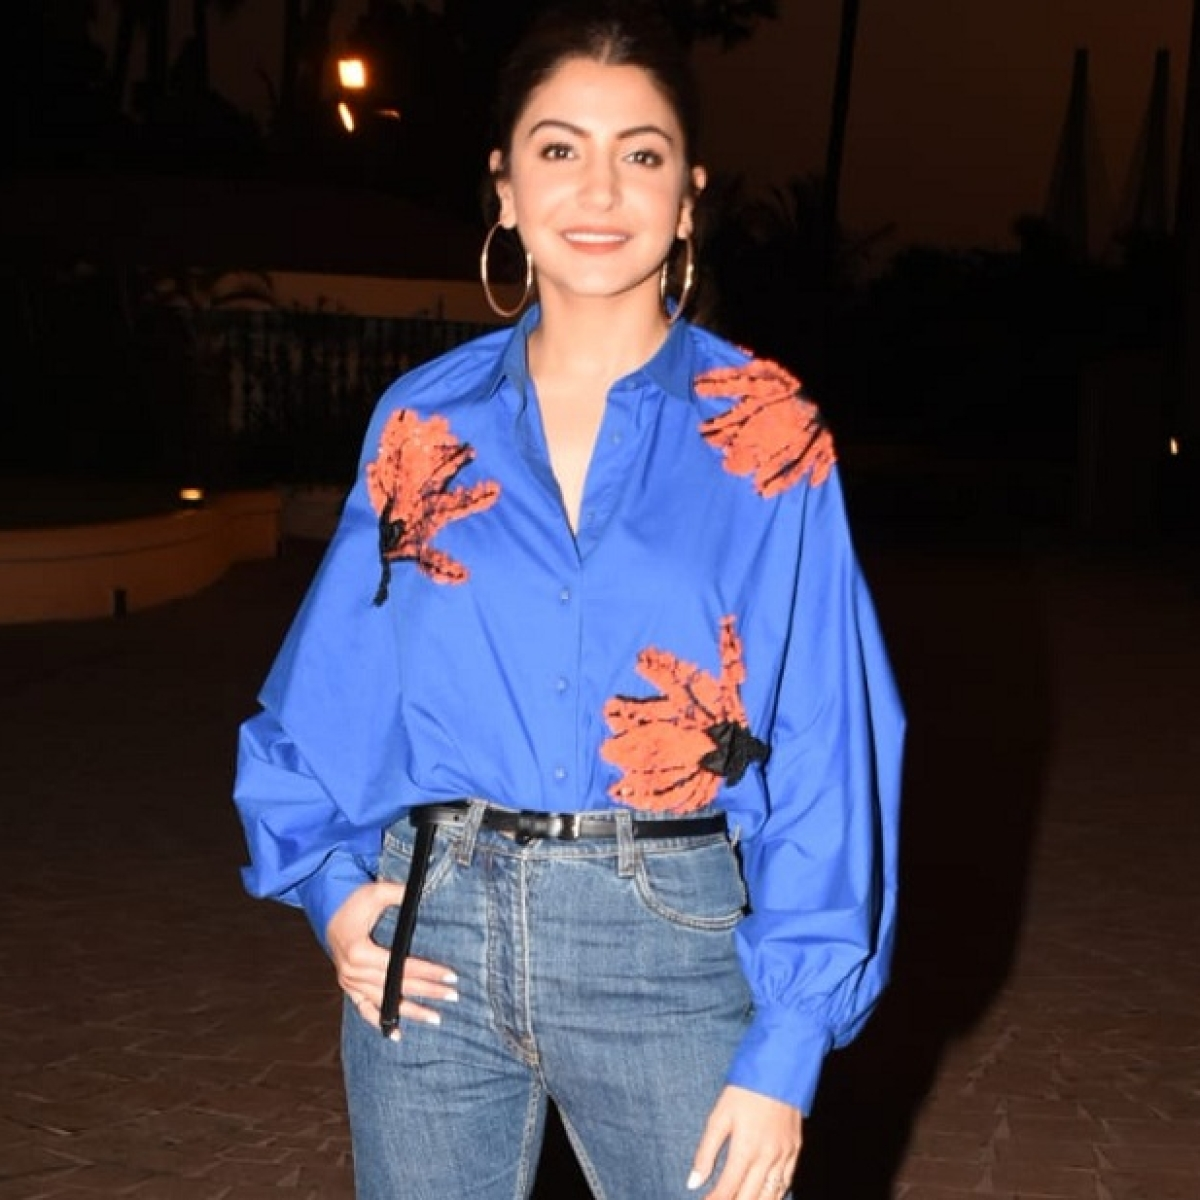 Theatrical releases are here to stay in India, says Anushka Sharma